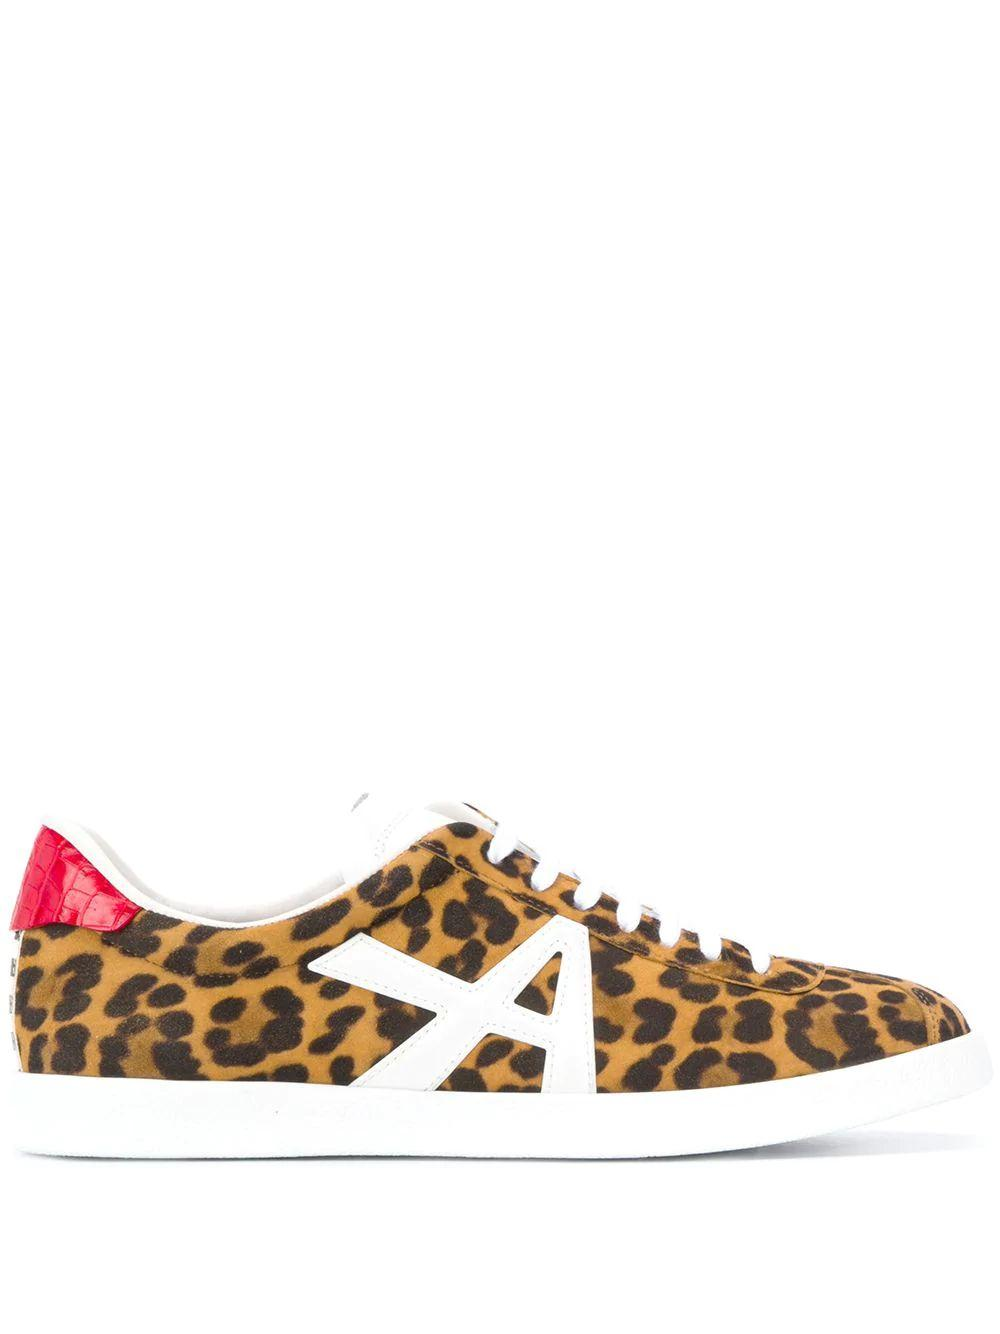 The A Jaguar Suede Printed Crocodile Sneaker